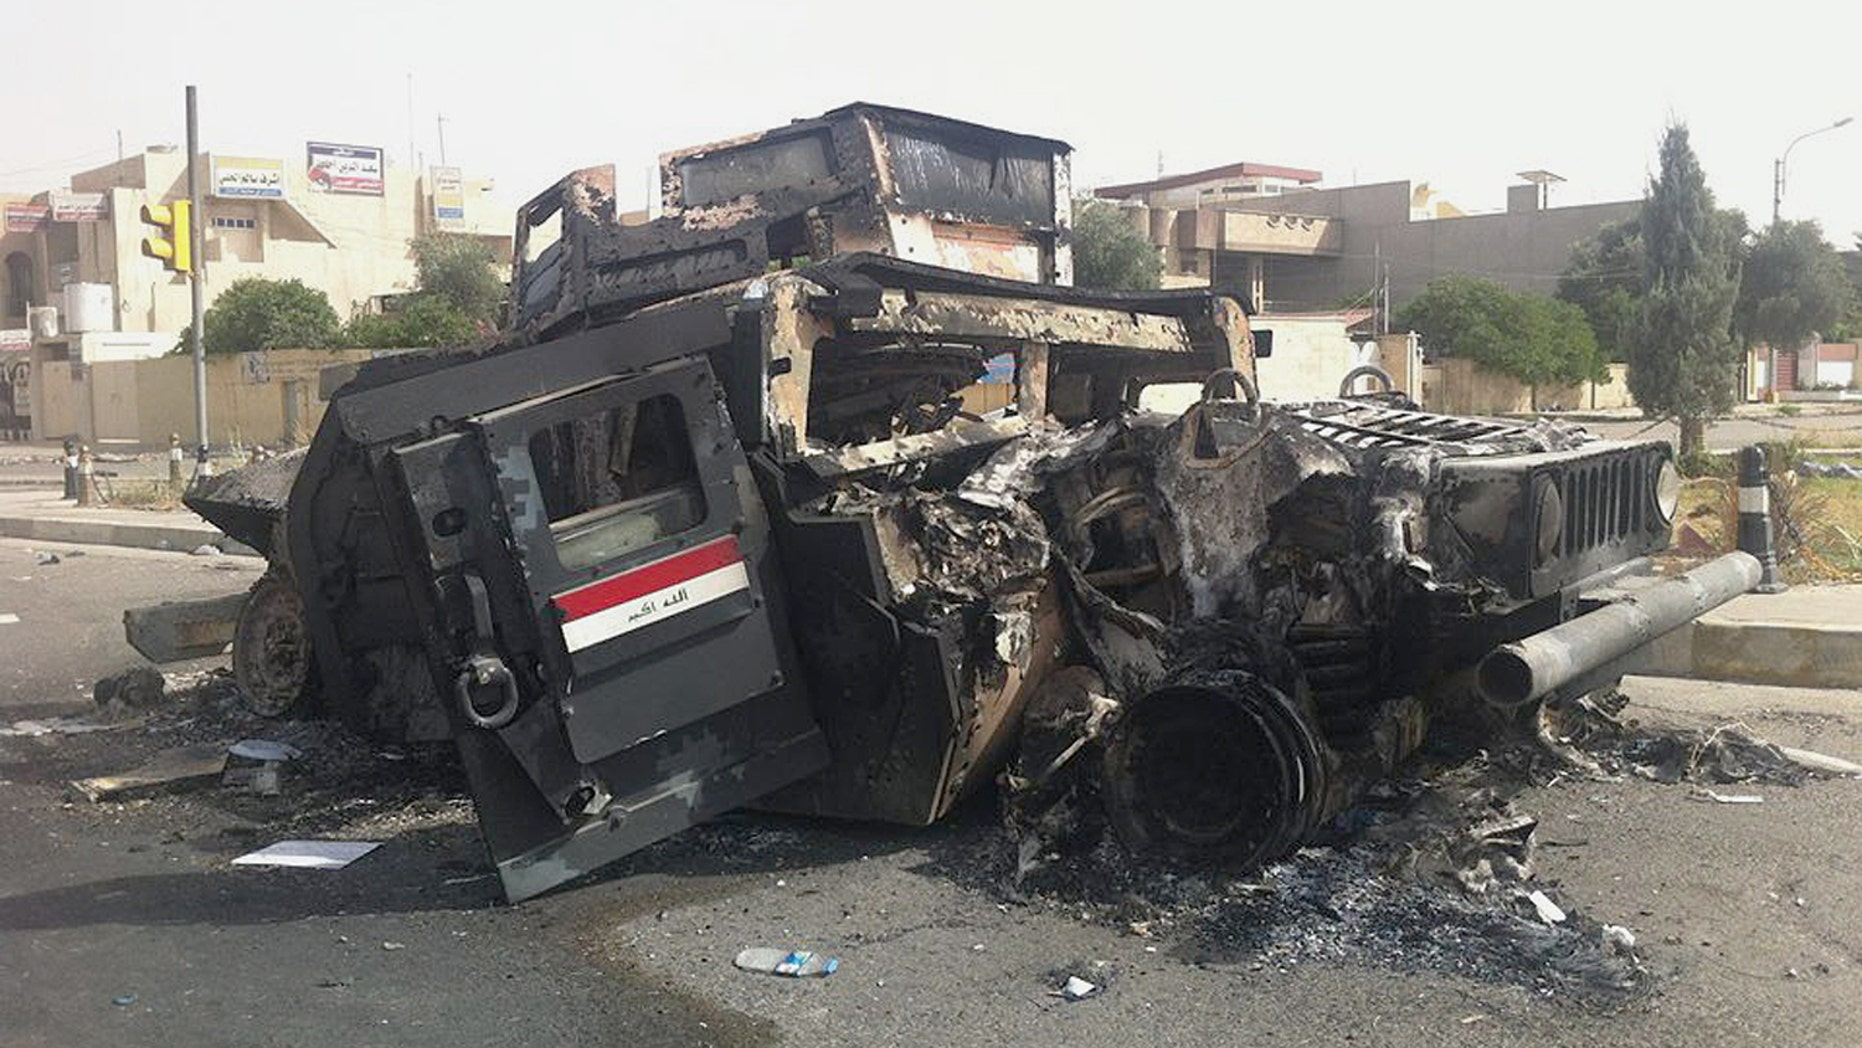 June 12, 2014 - Burned Iraqi army armored vehicle in Mosul, Iraq. The Al Qaeda-inspired group that captured 2 key Sunni-dominated cities in Iraq this week vowed to march on to Baghdad, raising fears about the Shiite-led government's ability to slow the assault following the insurgents.